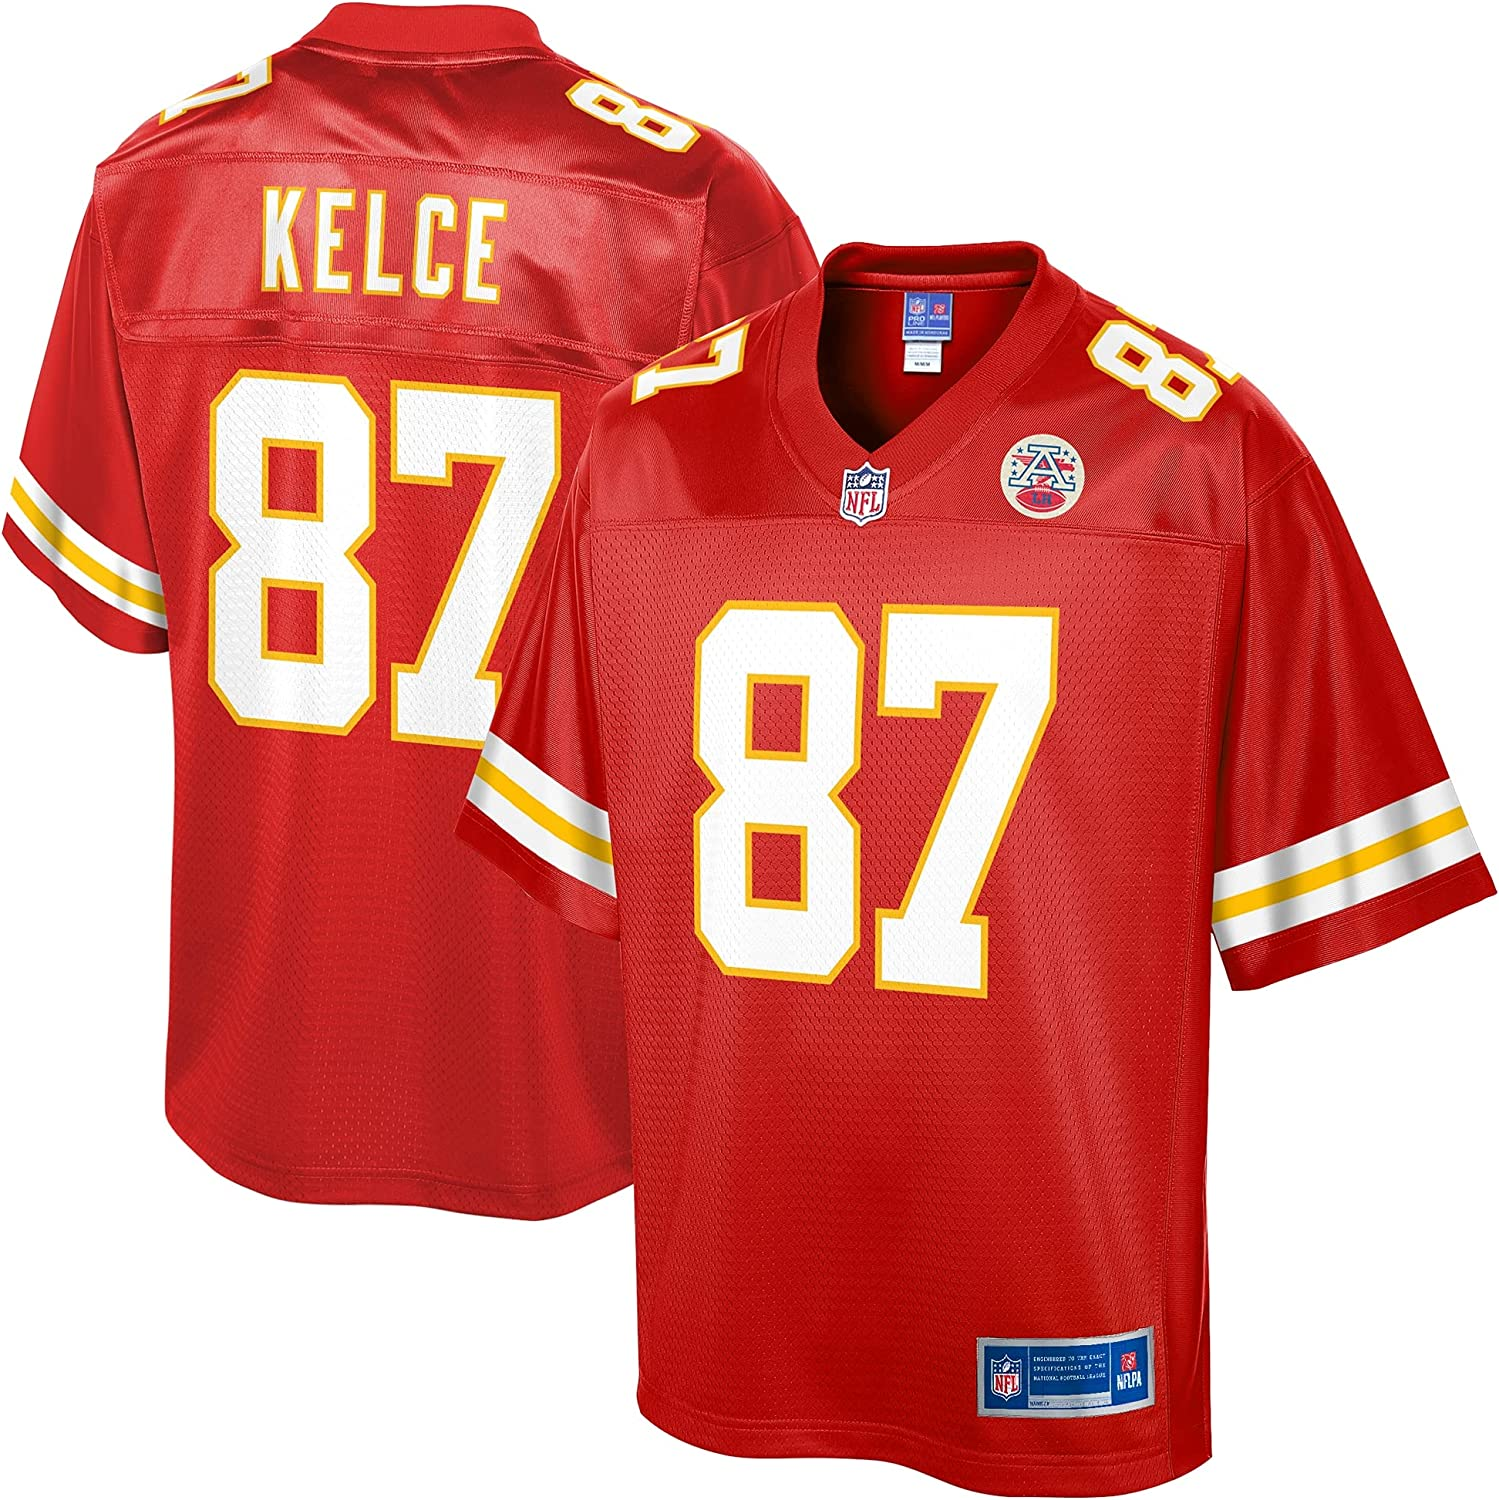 NFL PRO LINE Men's Travis Kelce Special price Kansas Chiefs Team New life Red City Play